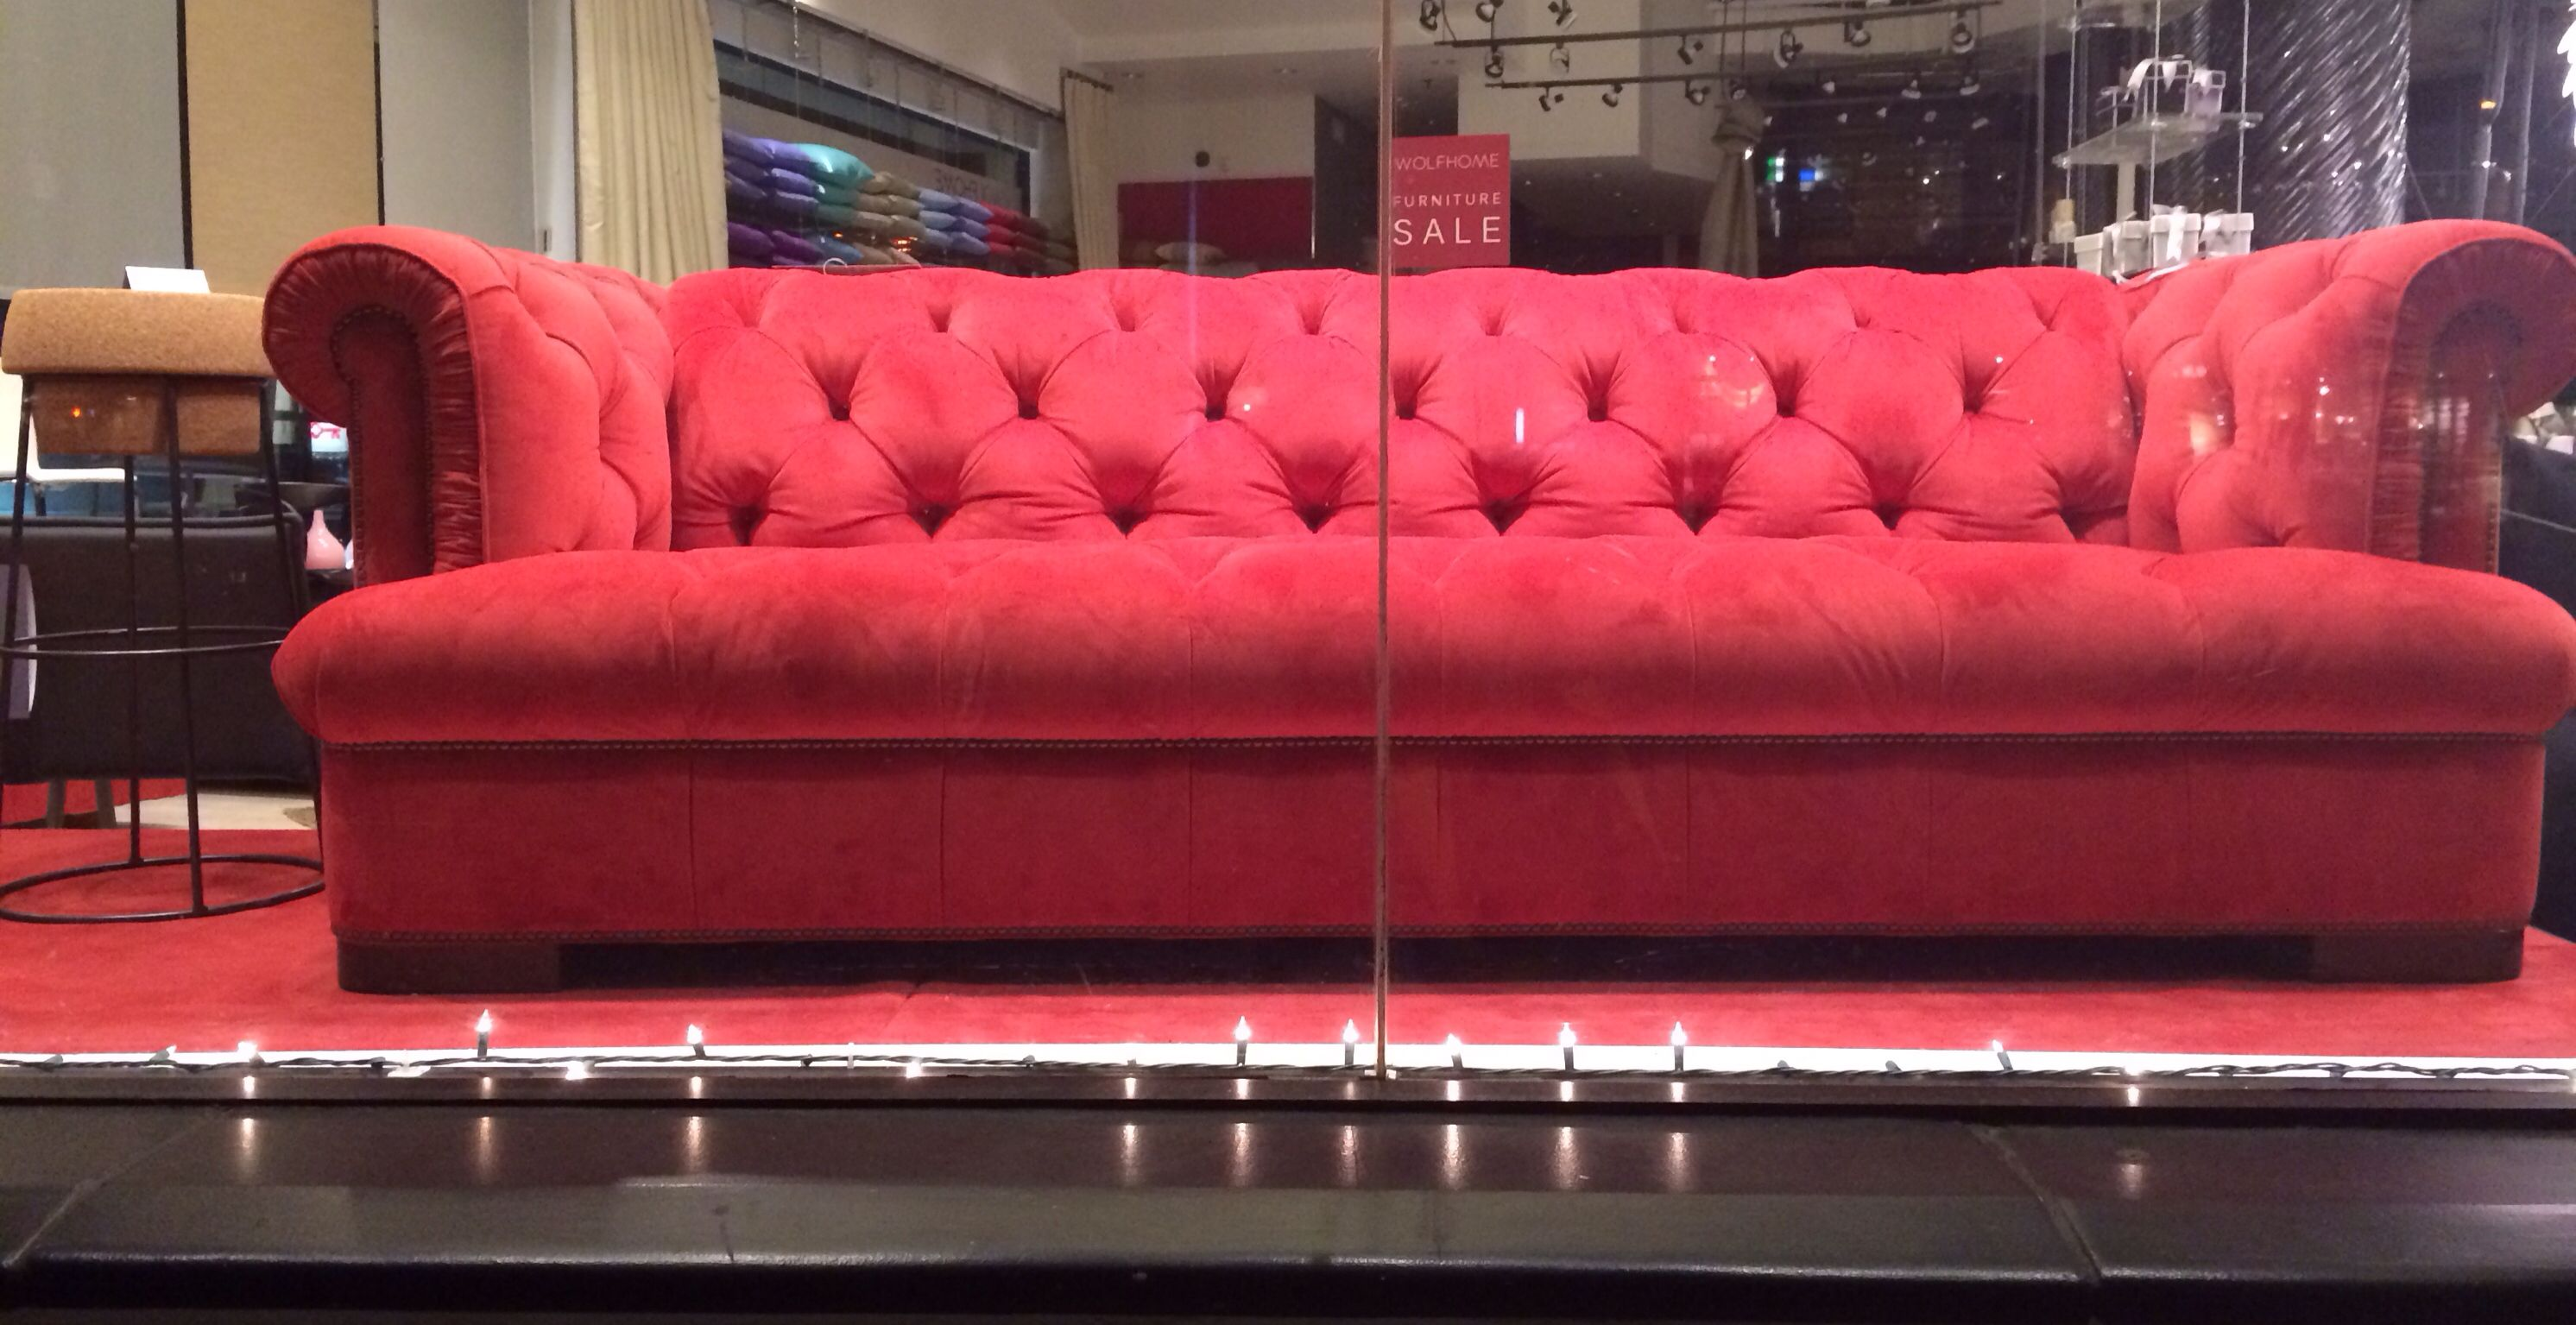 y couches Fabulous couches Pinterest